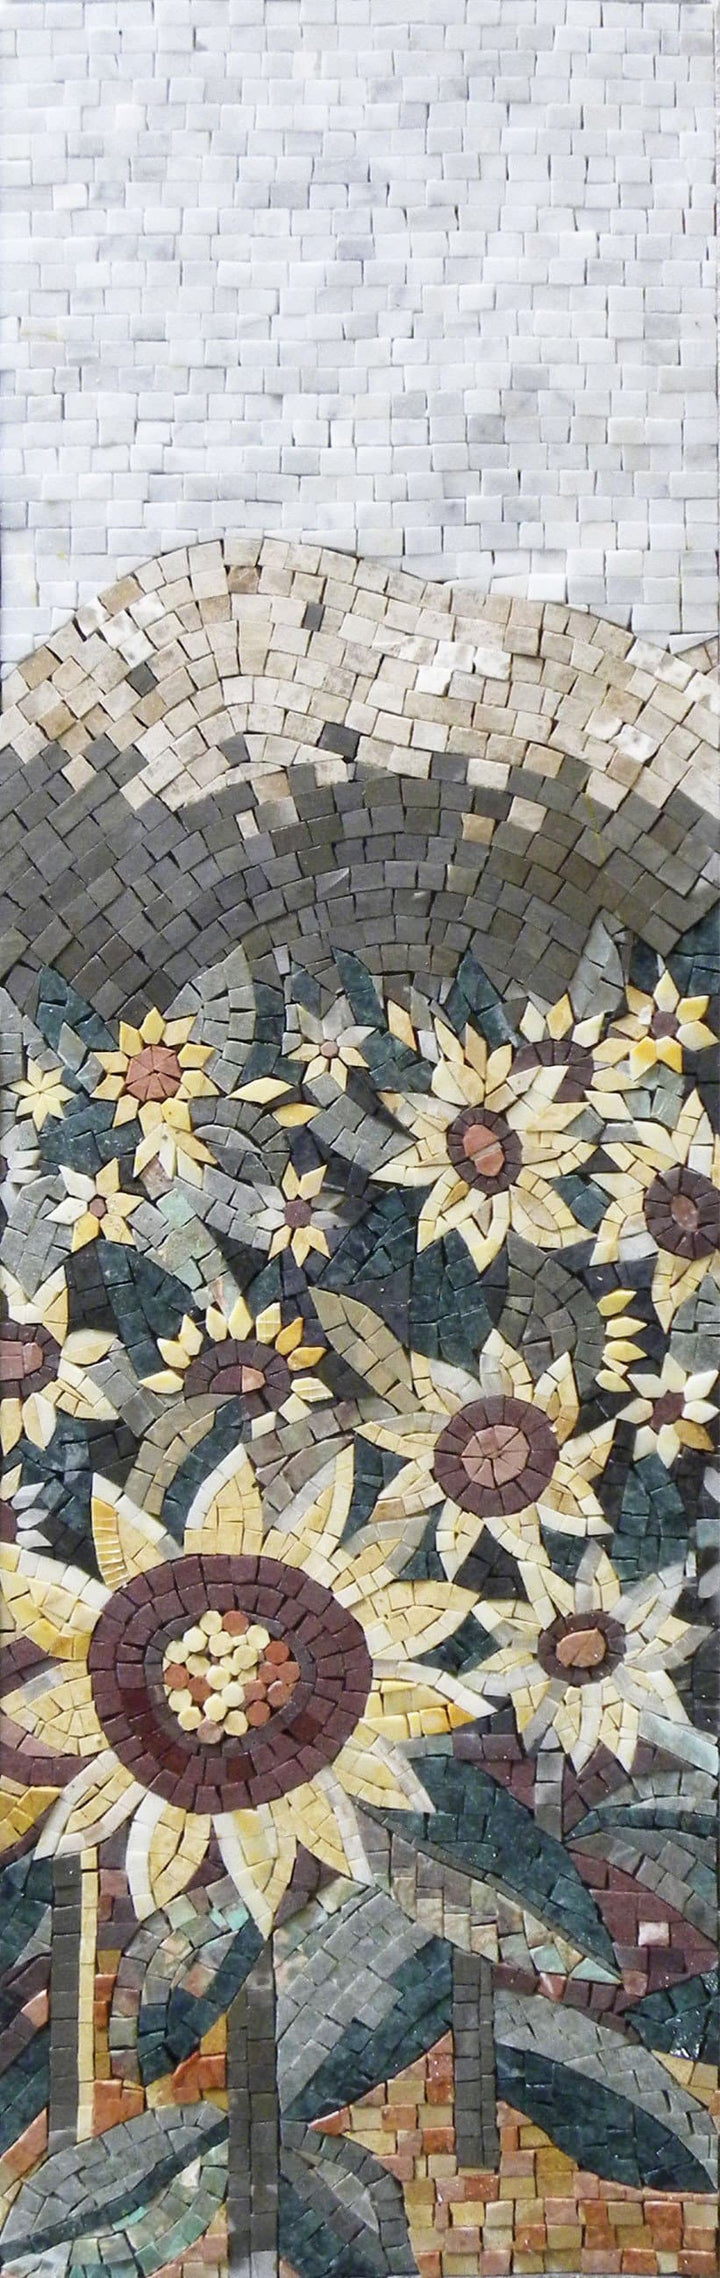 Mosaic Tile Art - Sun On Flowers